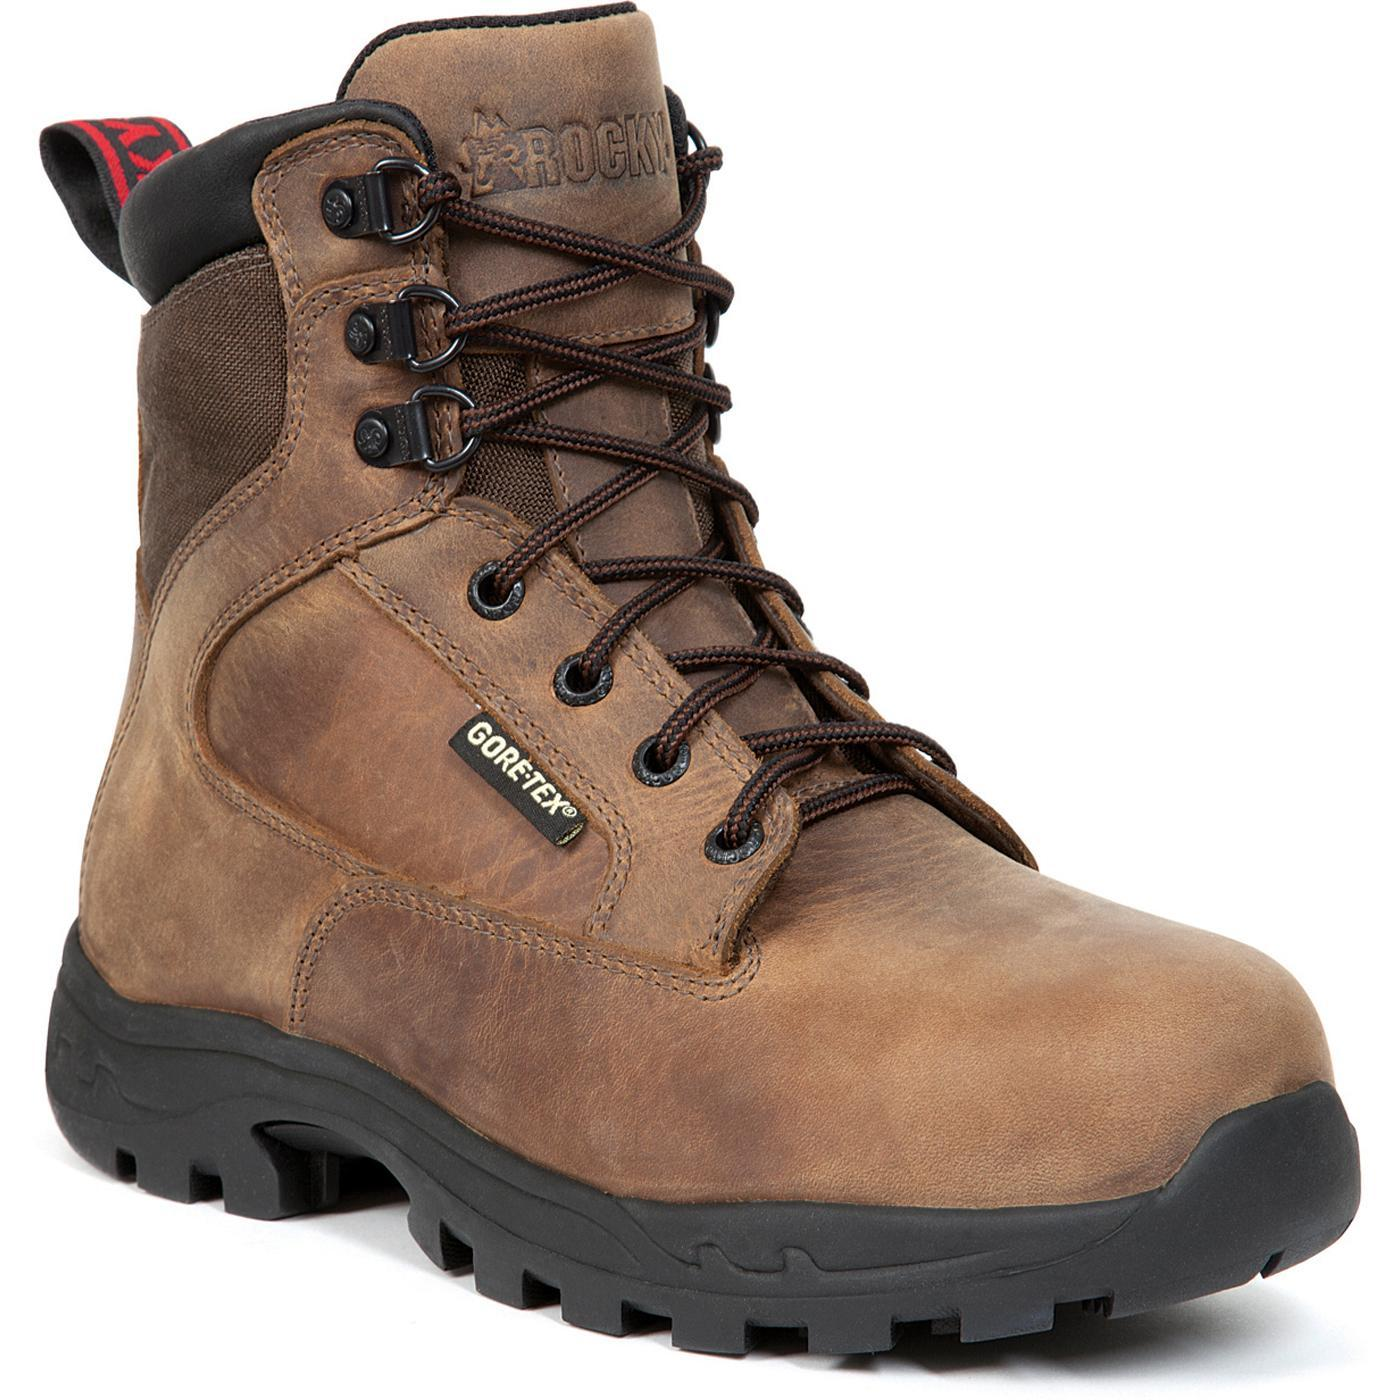 Rocky Women s ProLight Steel Toe Waterproof Insulated Work Boots ... 0bb9387969